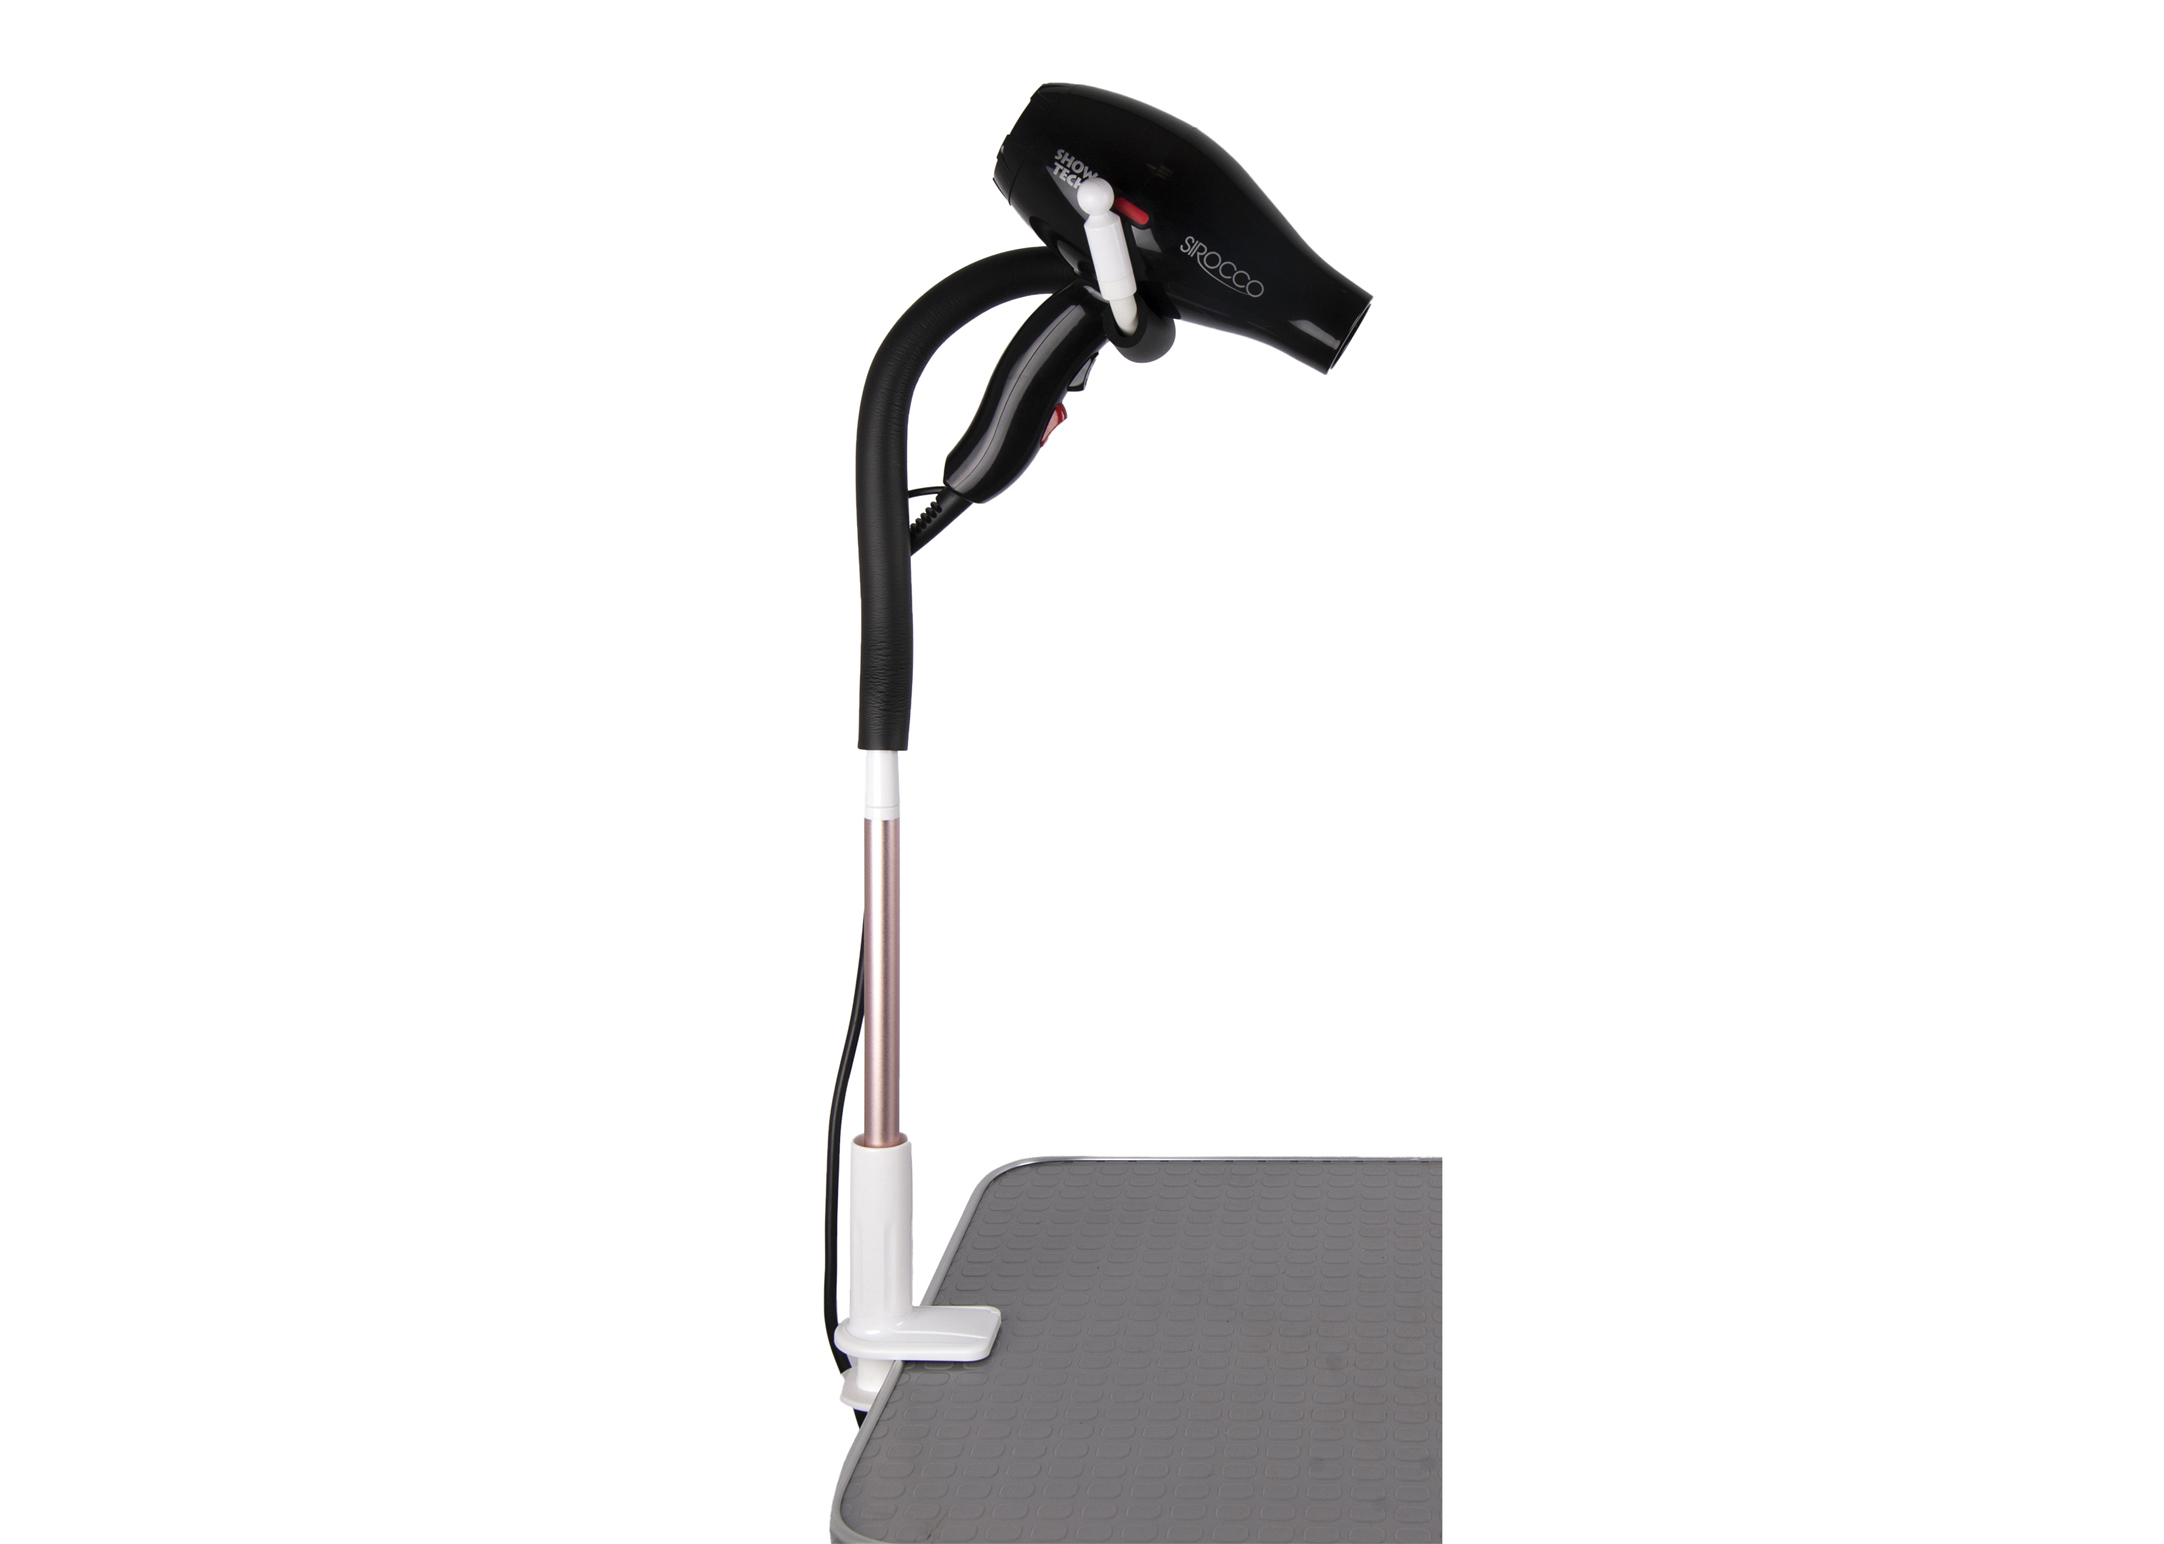 Show Tech Hands-Free Holder for Dryers with clamp